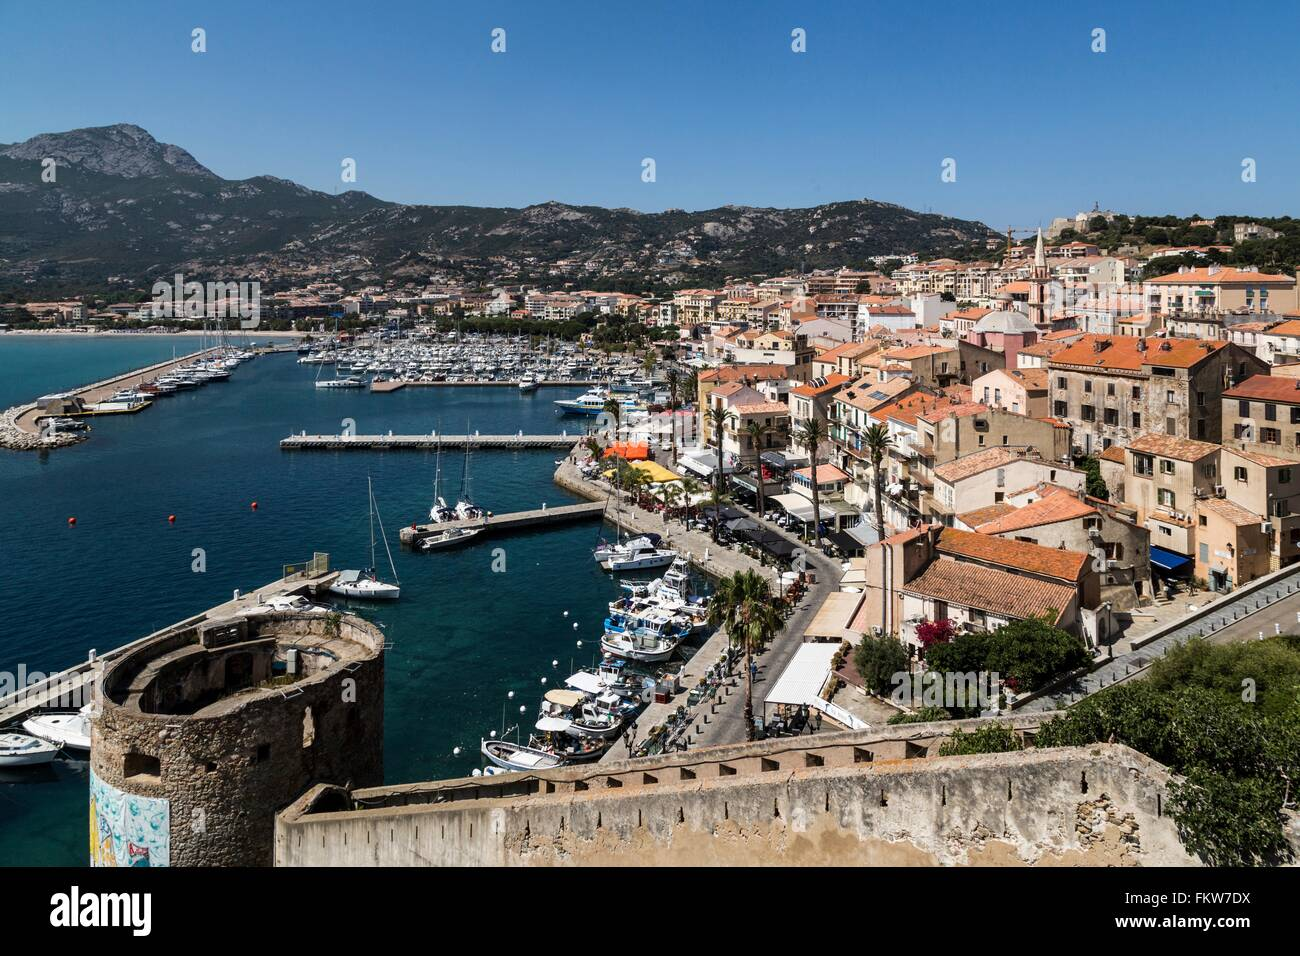 Elevated view   city walls and waterfront, Calvi, Corsica, France - Stock Image